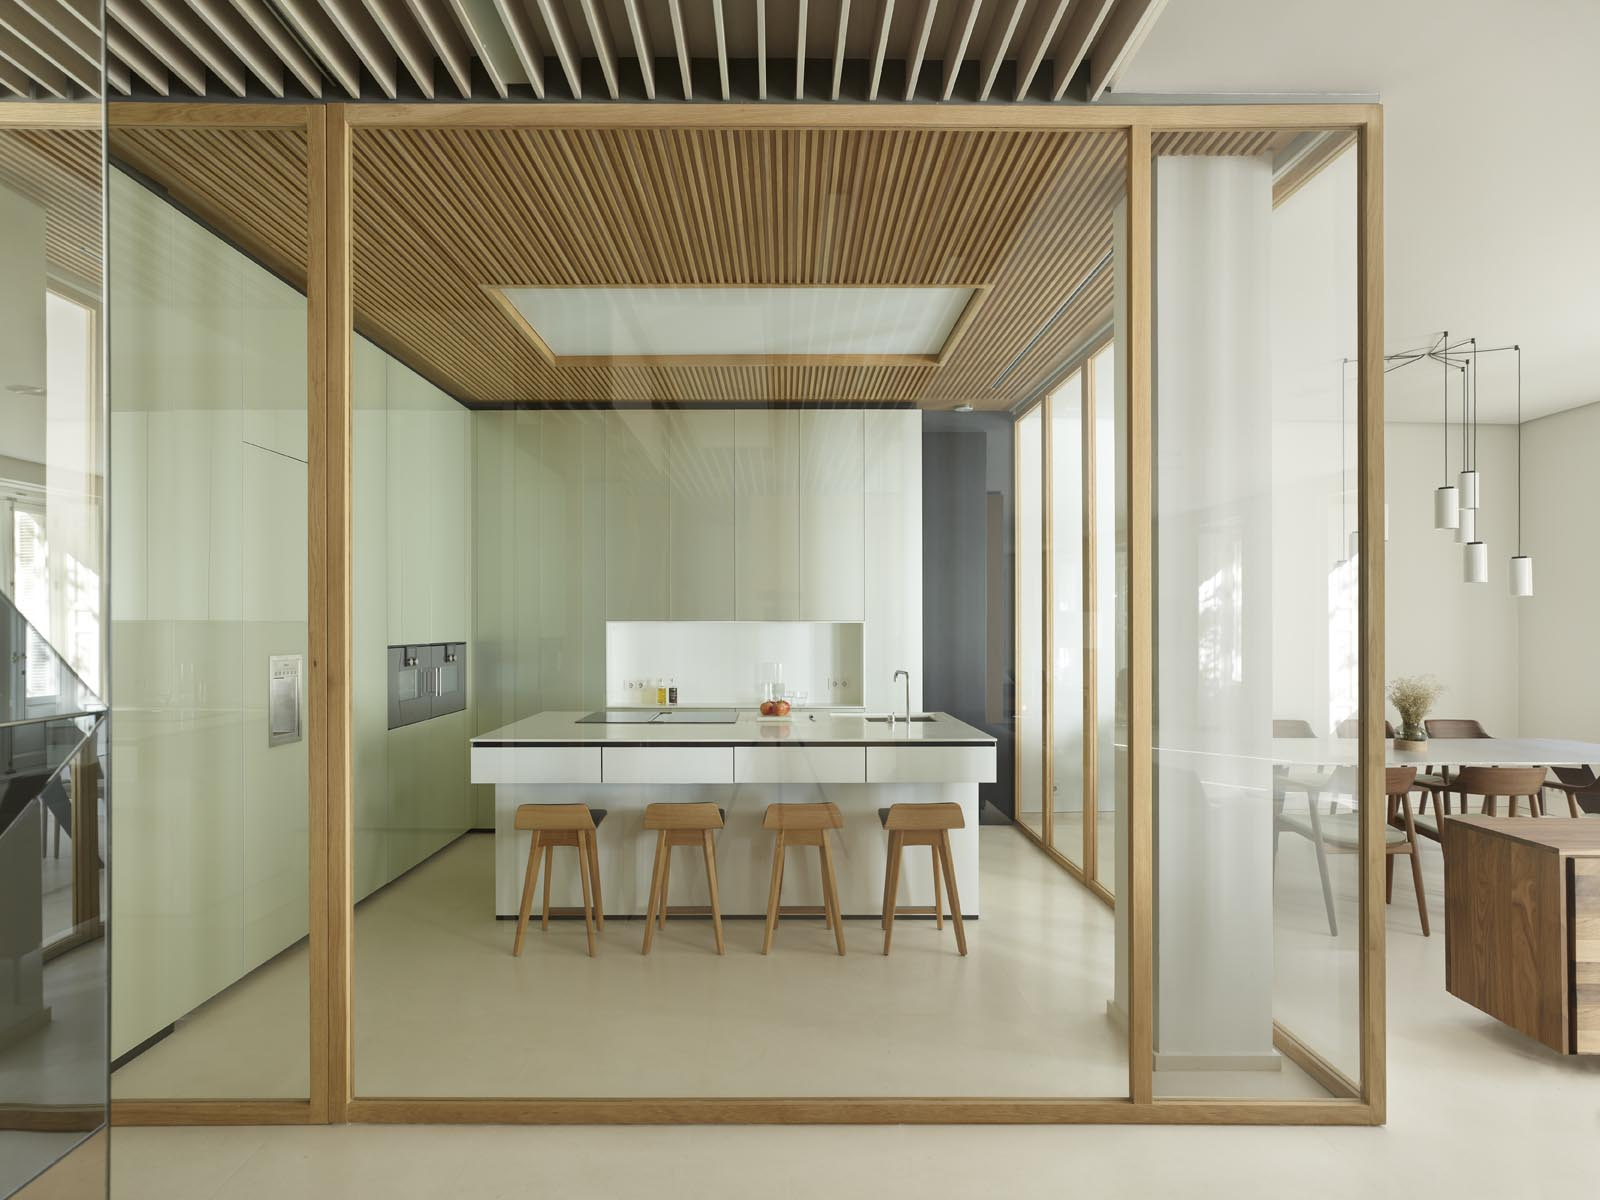 Home Remodeling In Madrid Ulab Projekte